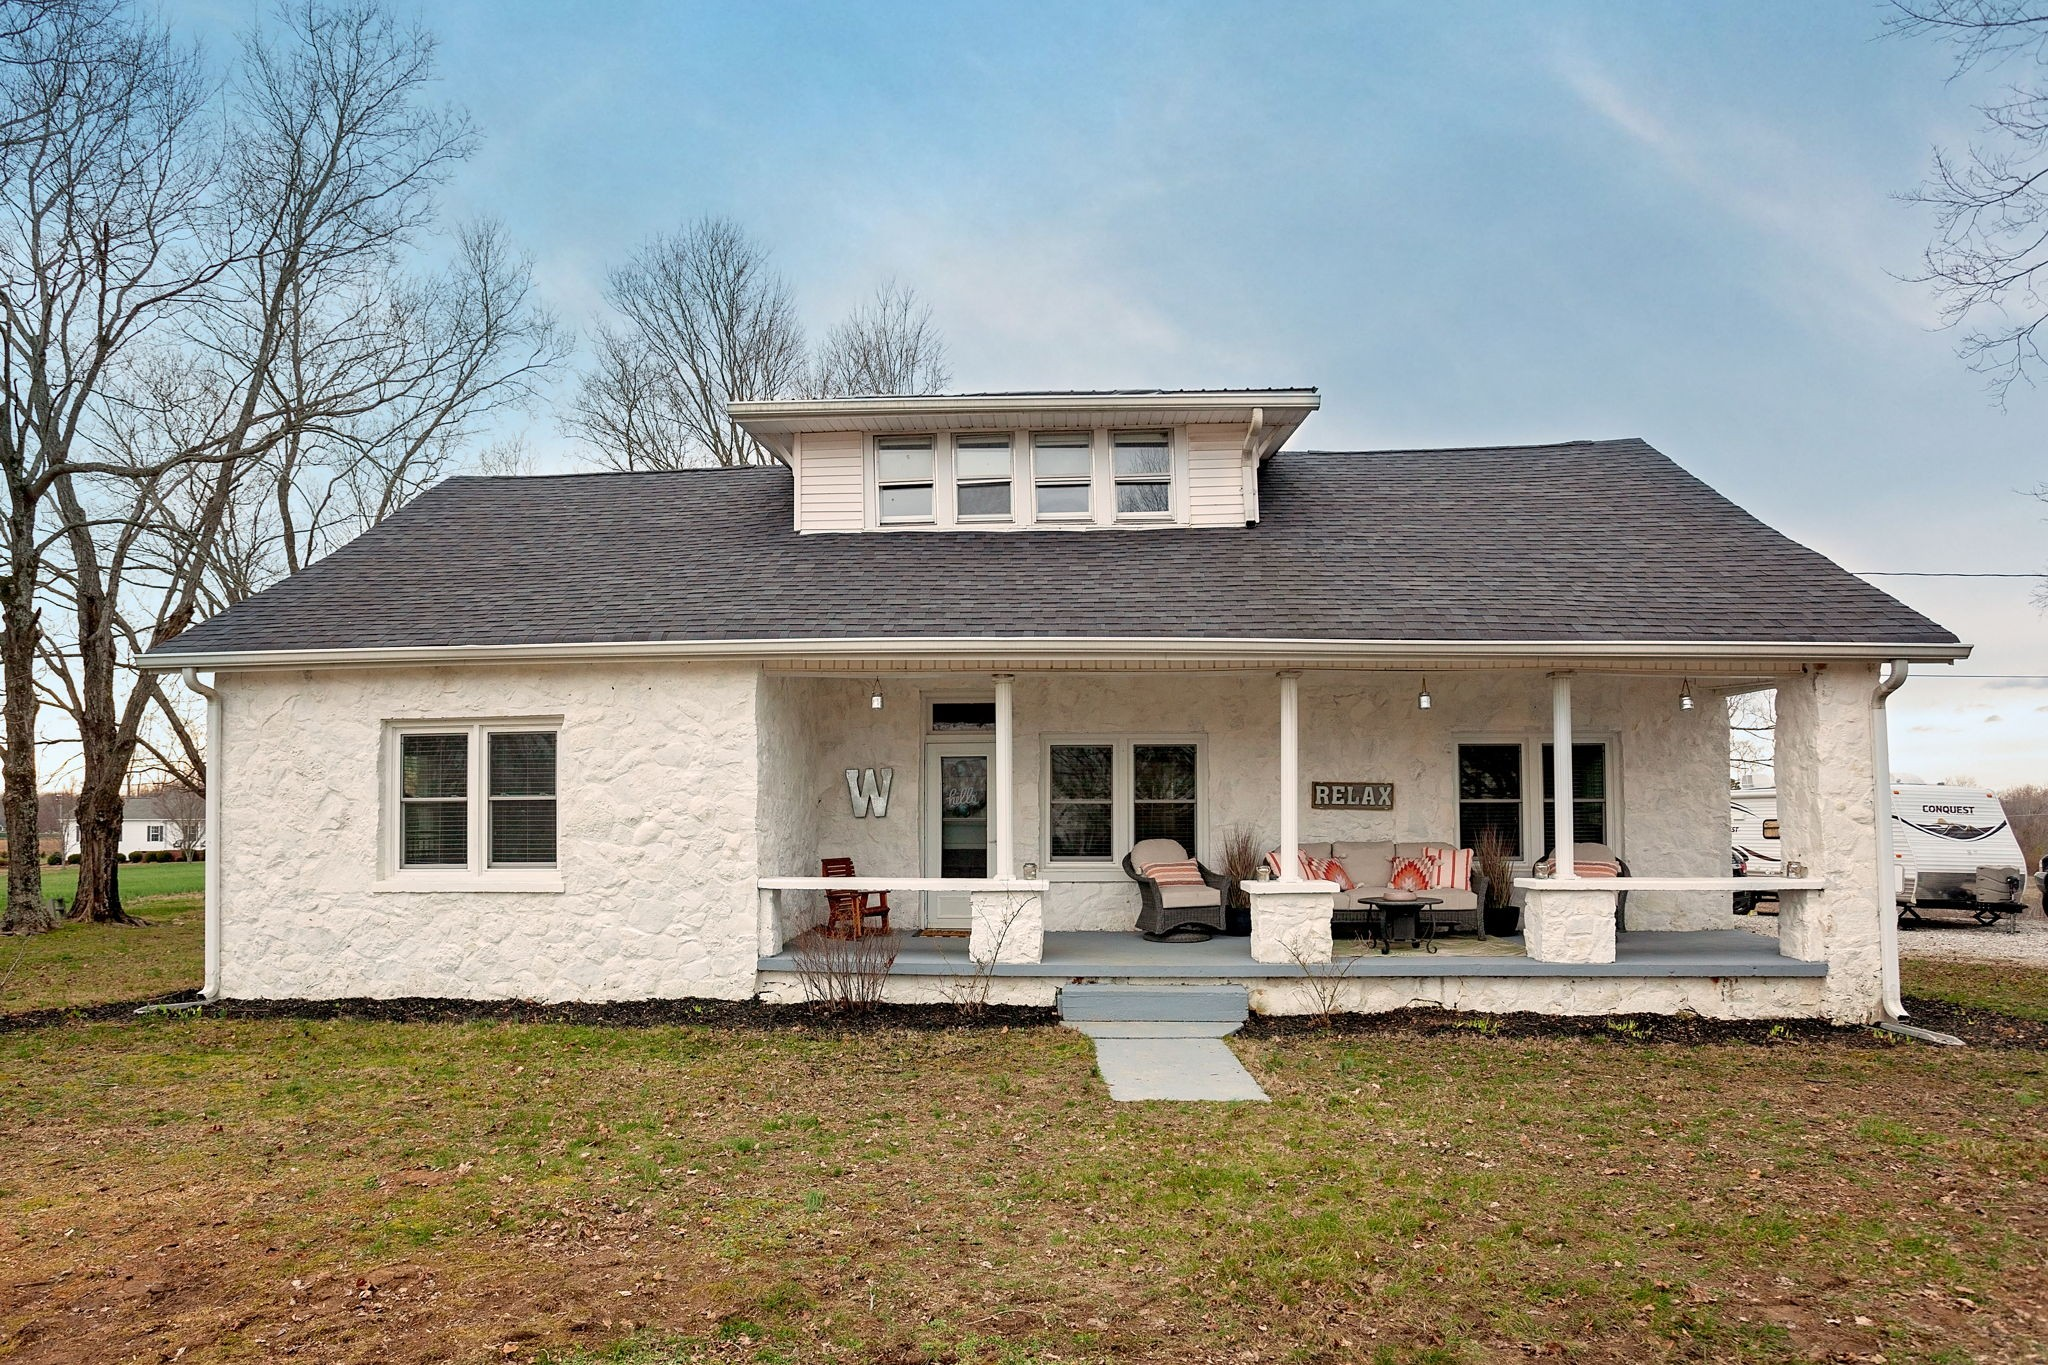 789 Old Nashville Hwy, MC EWEN, TN 37101 - MC EWEN, TN real estate listing